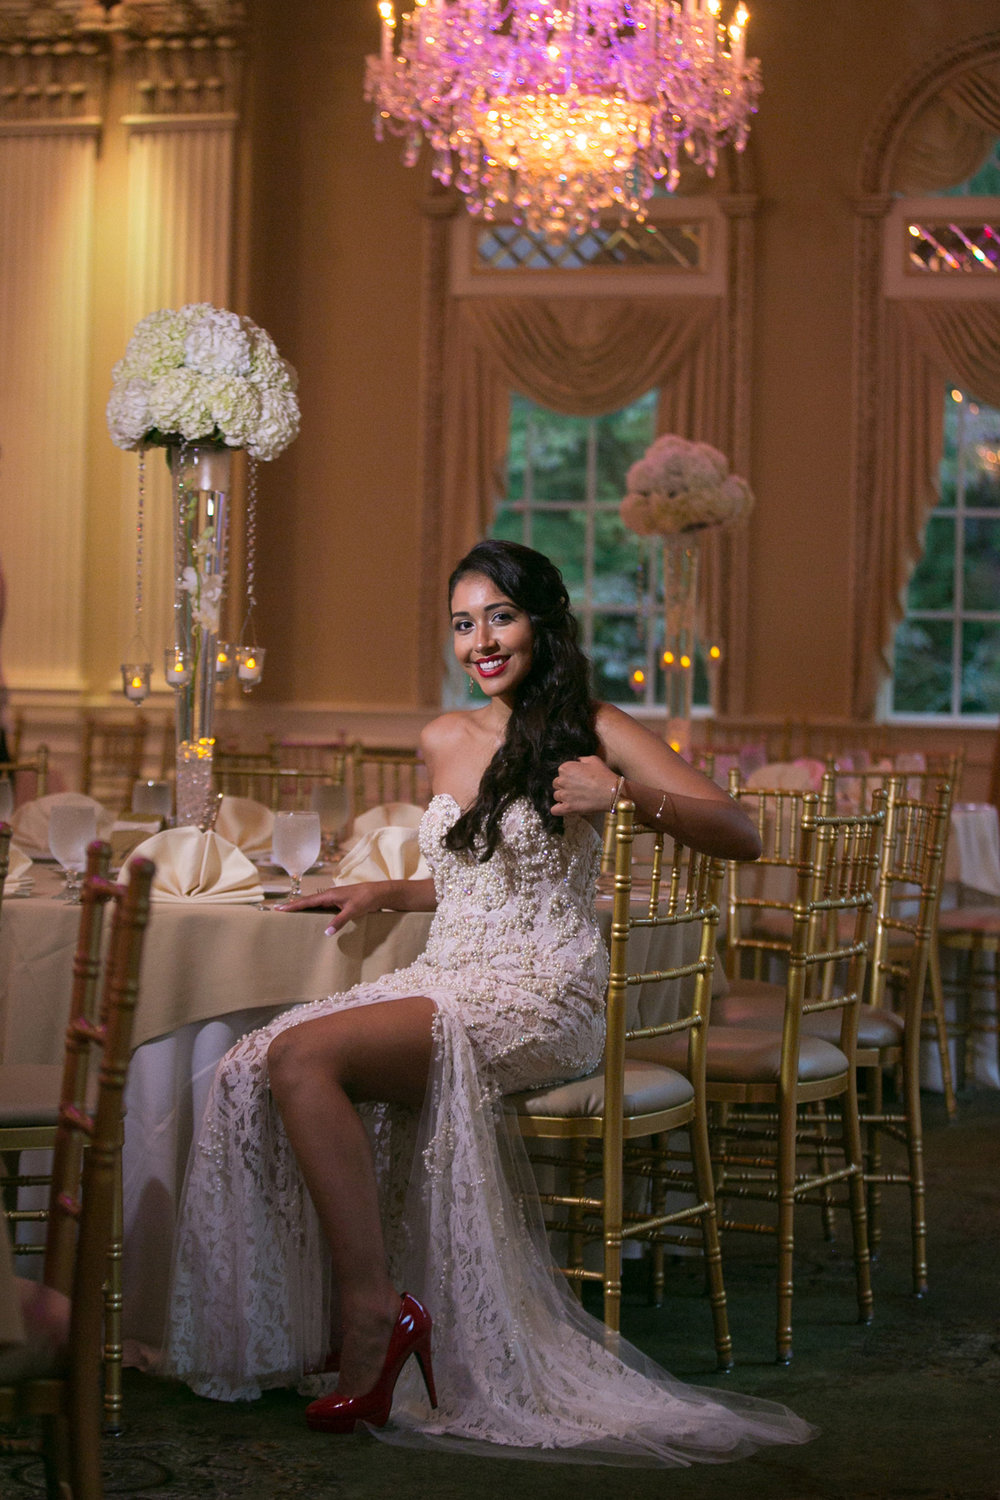 Such a beautiful portrait of Dahlia on her Sweet 16 evening. It was a great party held at The Old Tappan Manor in Old Tappan NJ. 914-907-9272 for photo information